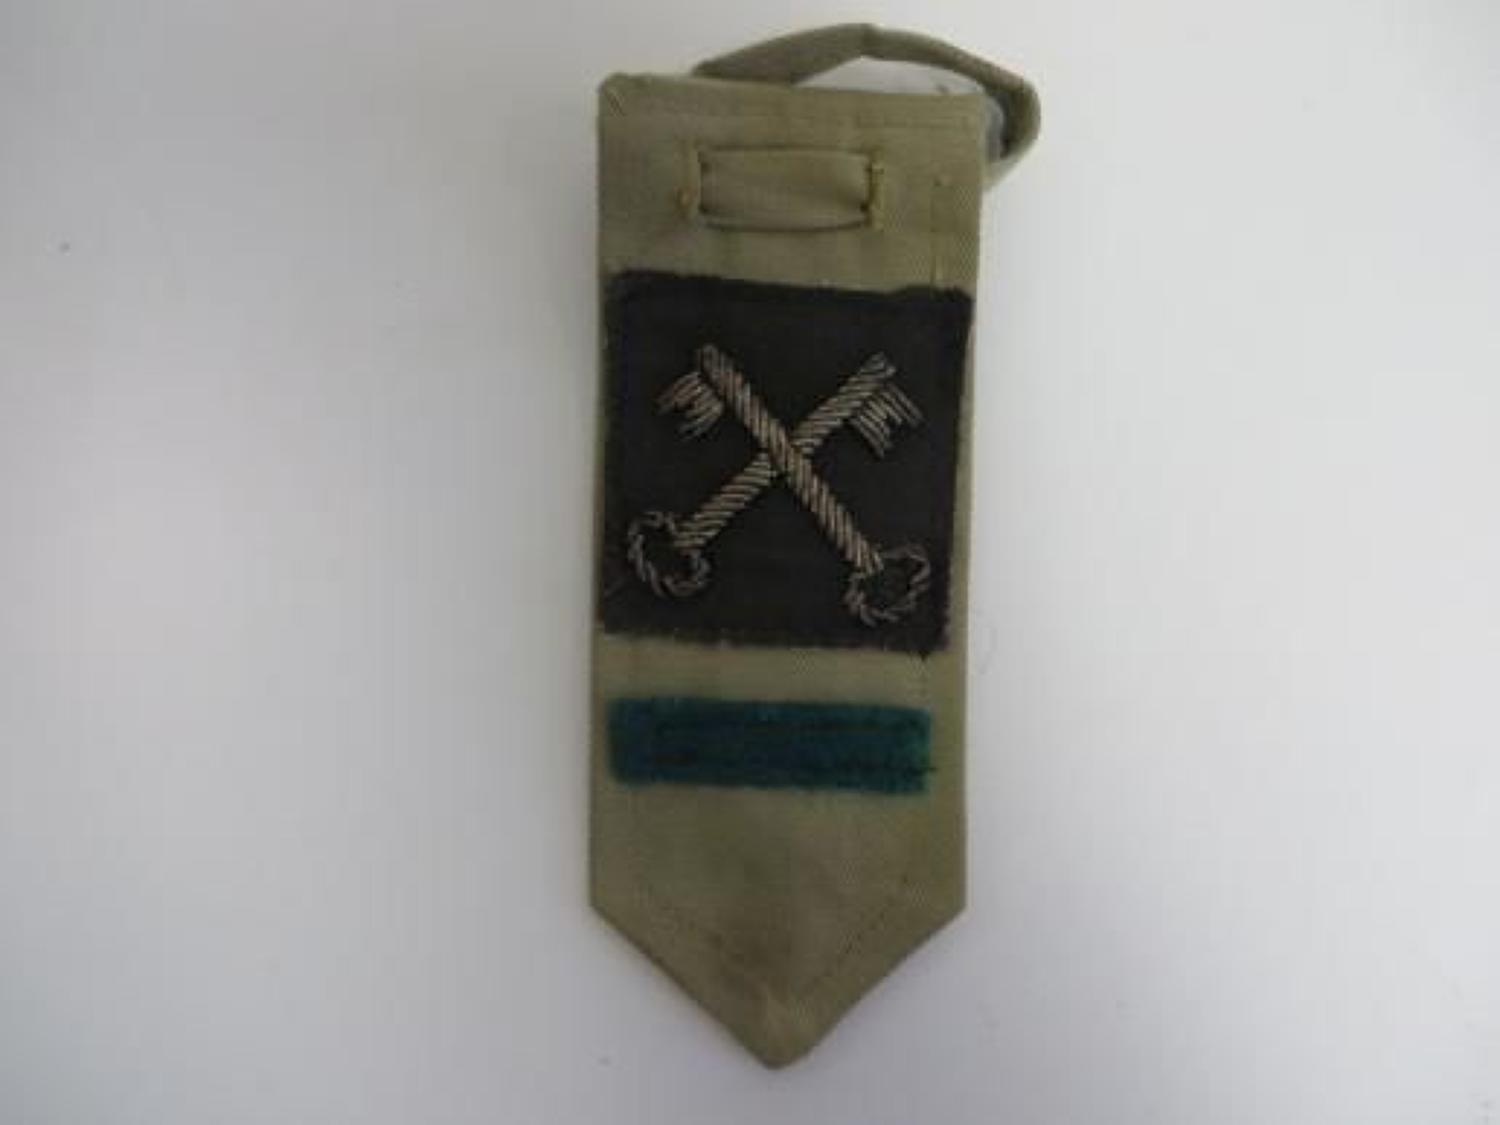 2nd Division Intelligence Corps Slip On Hanging Tab